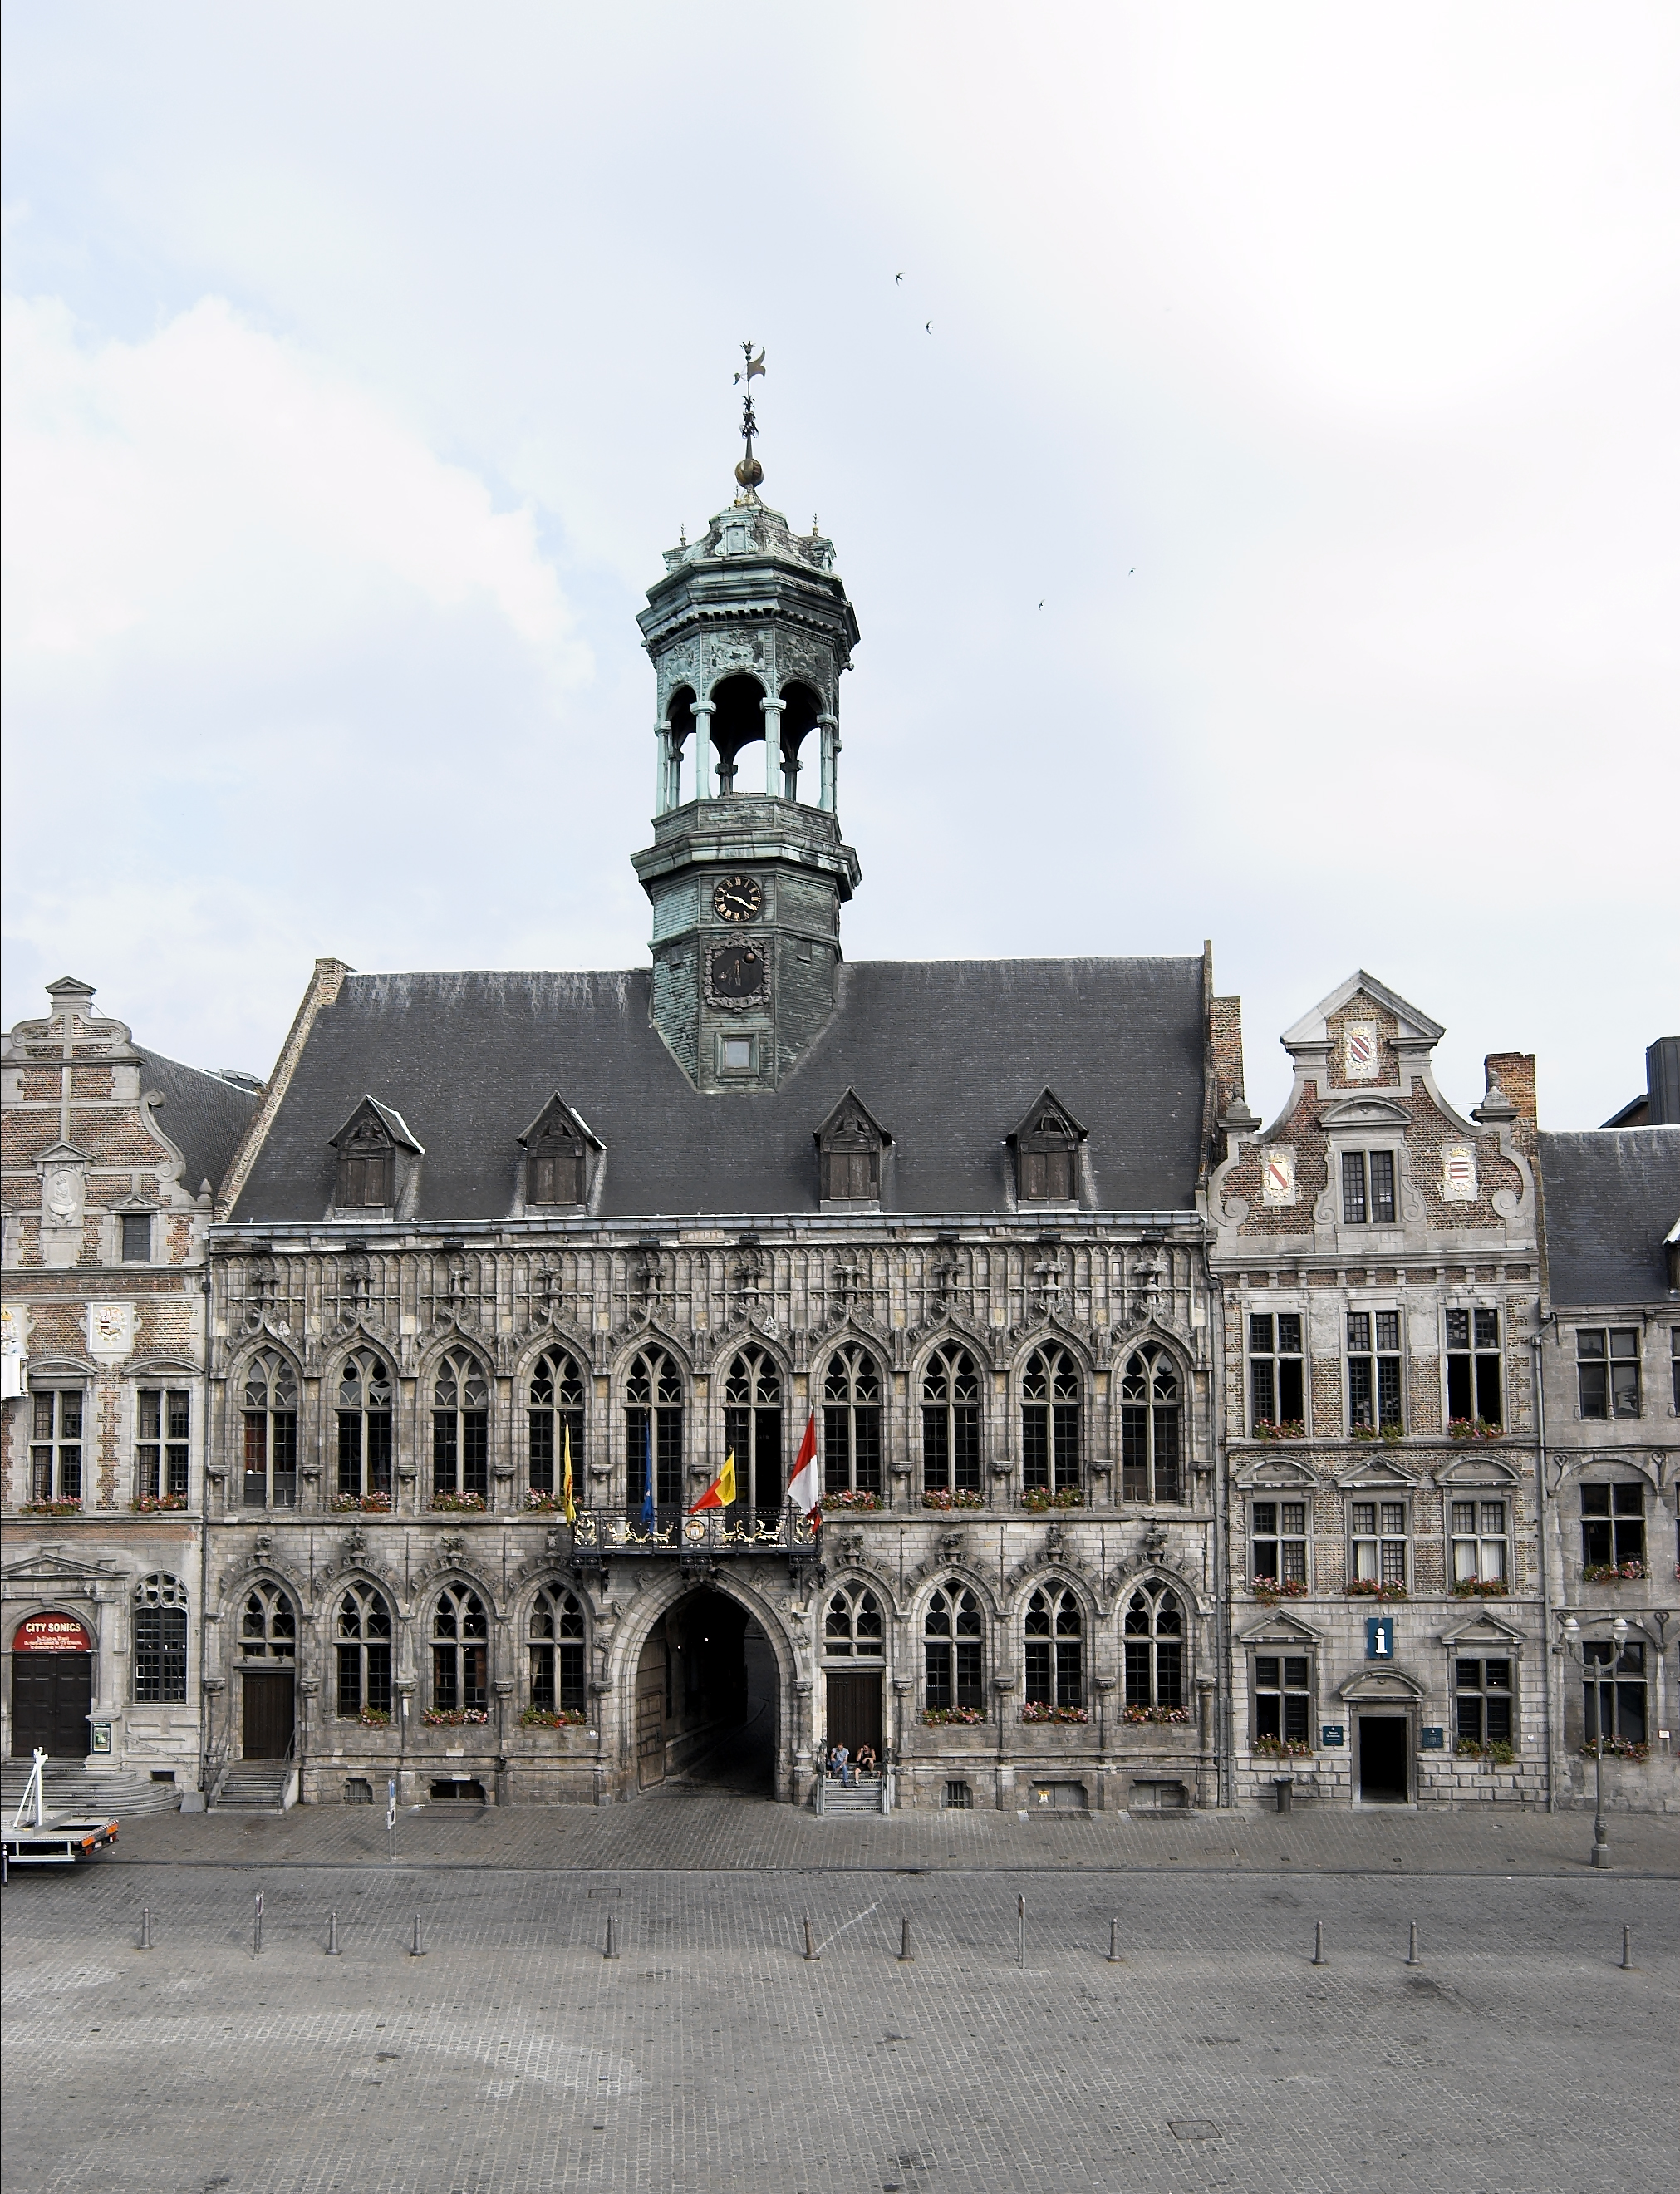 File:Hotel de ville de Mons.jpg - Wikipedia, the free encyclopedia